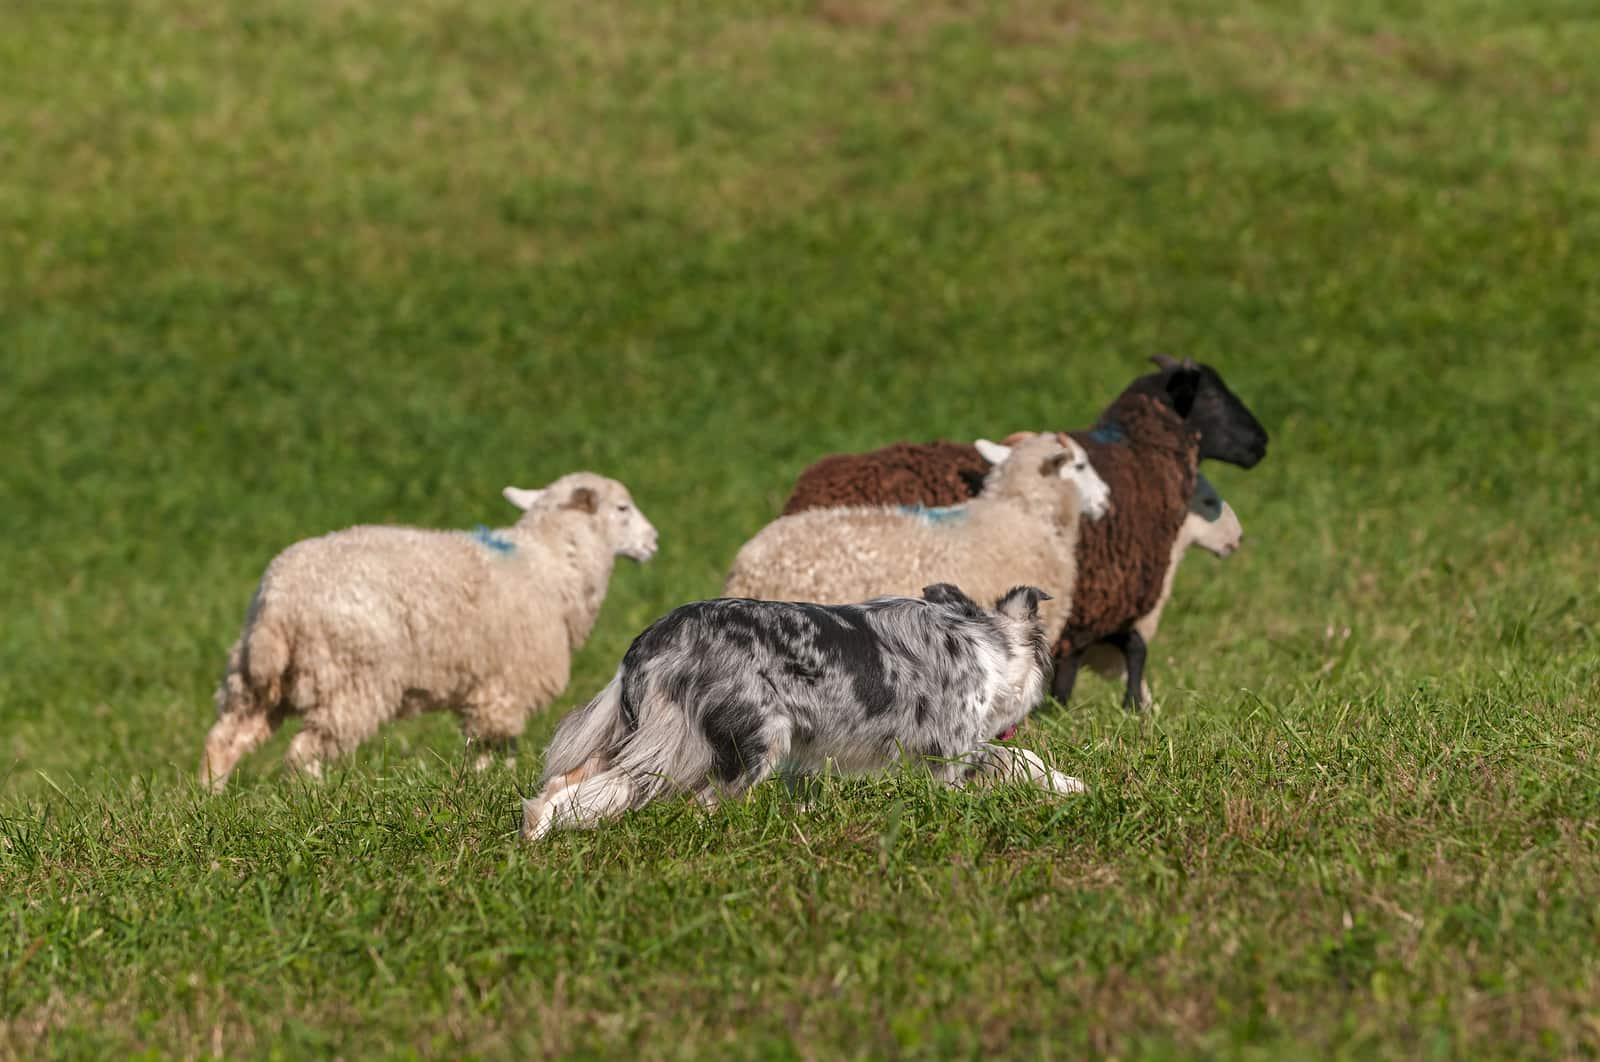 Australian shepherd herding four sheep.